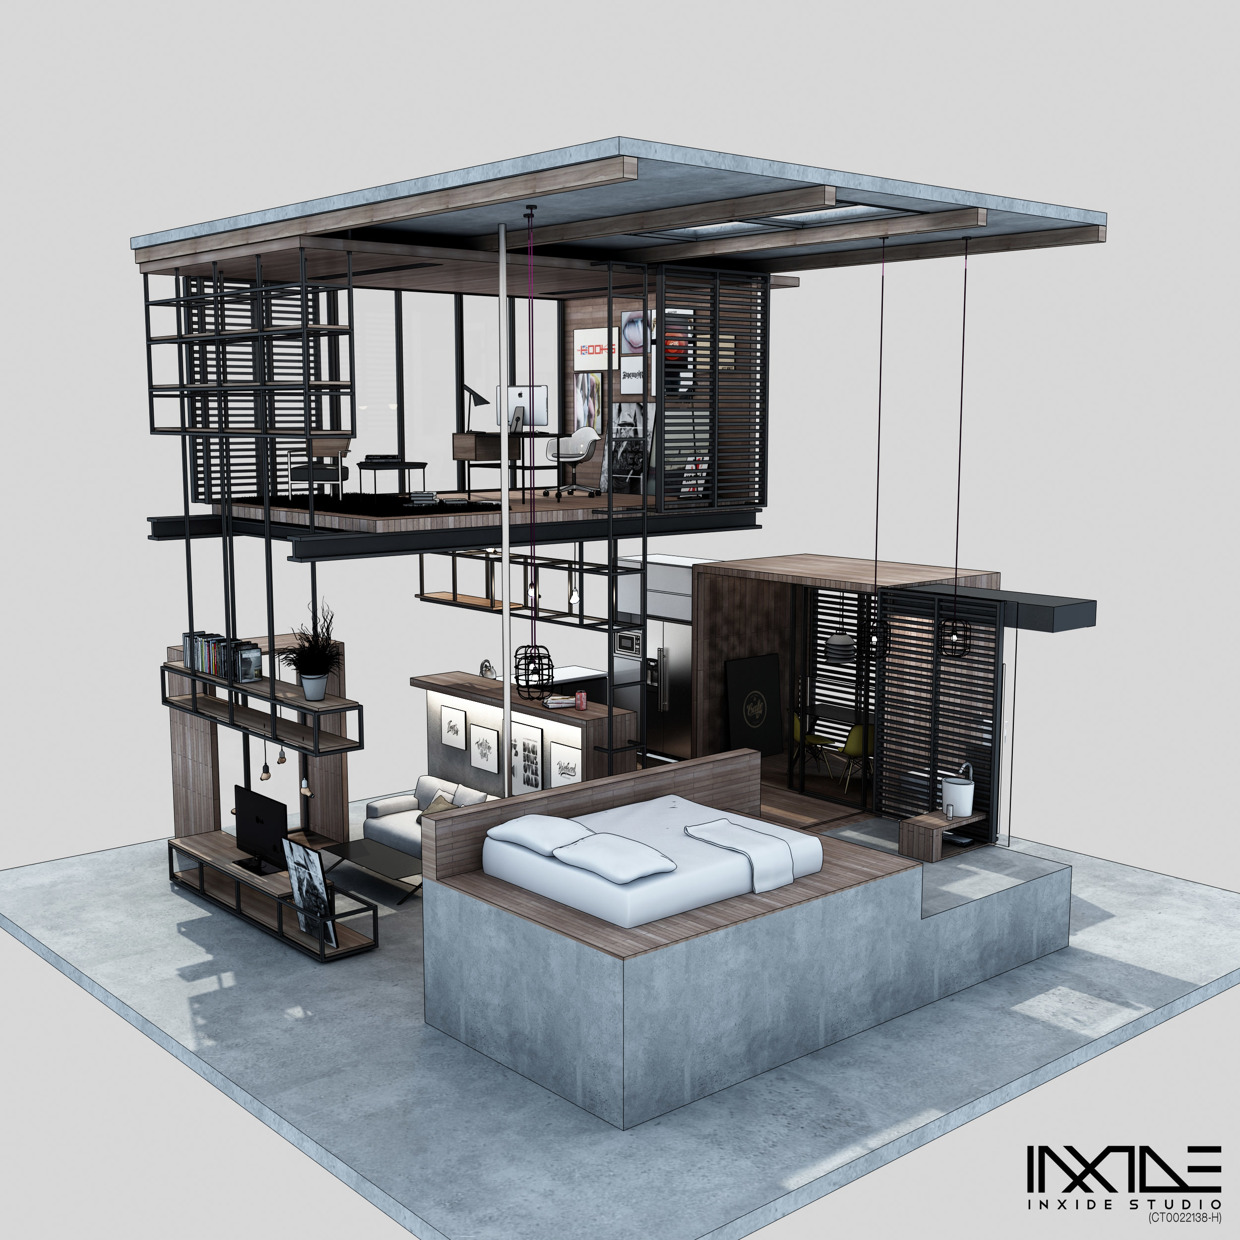 House Inside Design: Compact Modern House Made From Affordable Materials